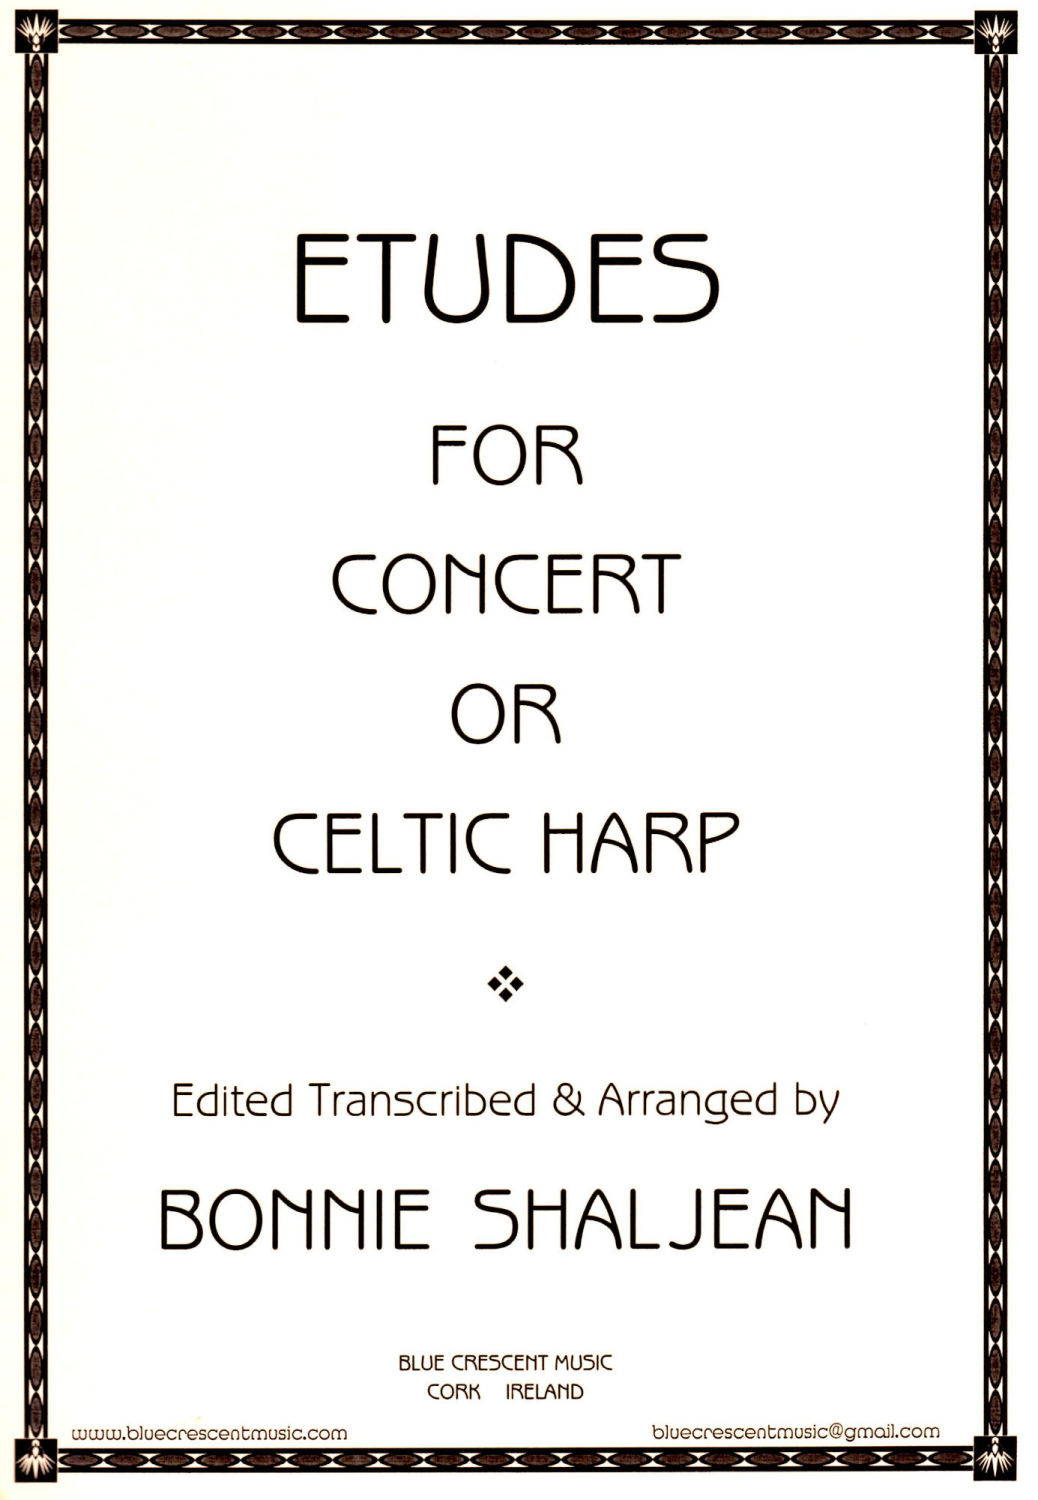 Etudes for Concert or Celtic Harp